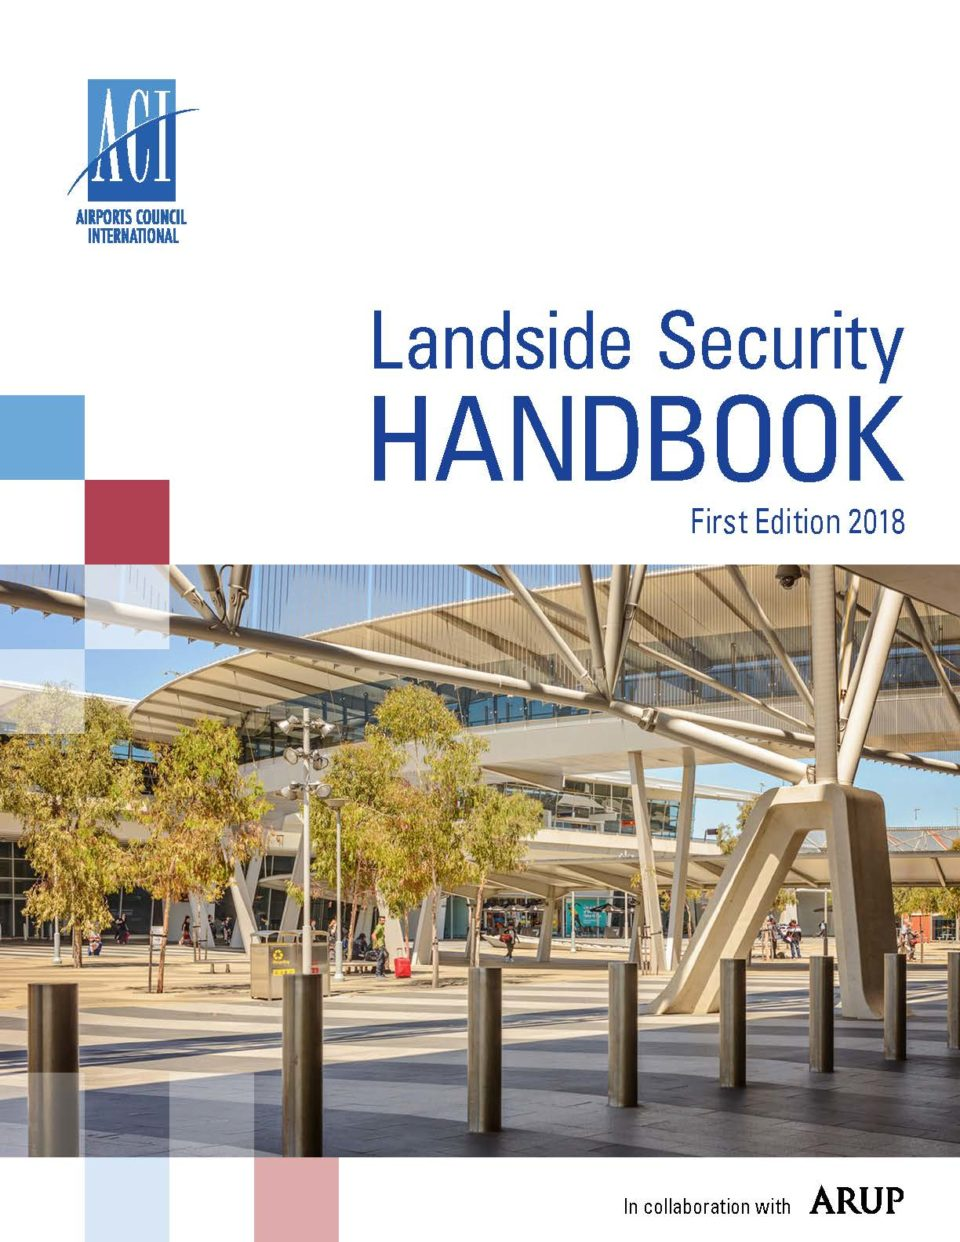 ACI World Landside Security Handbook 1st edition 2018